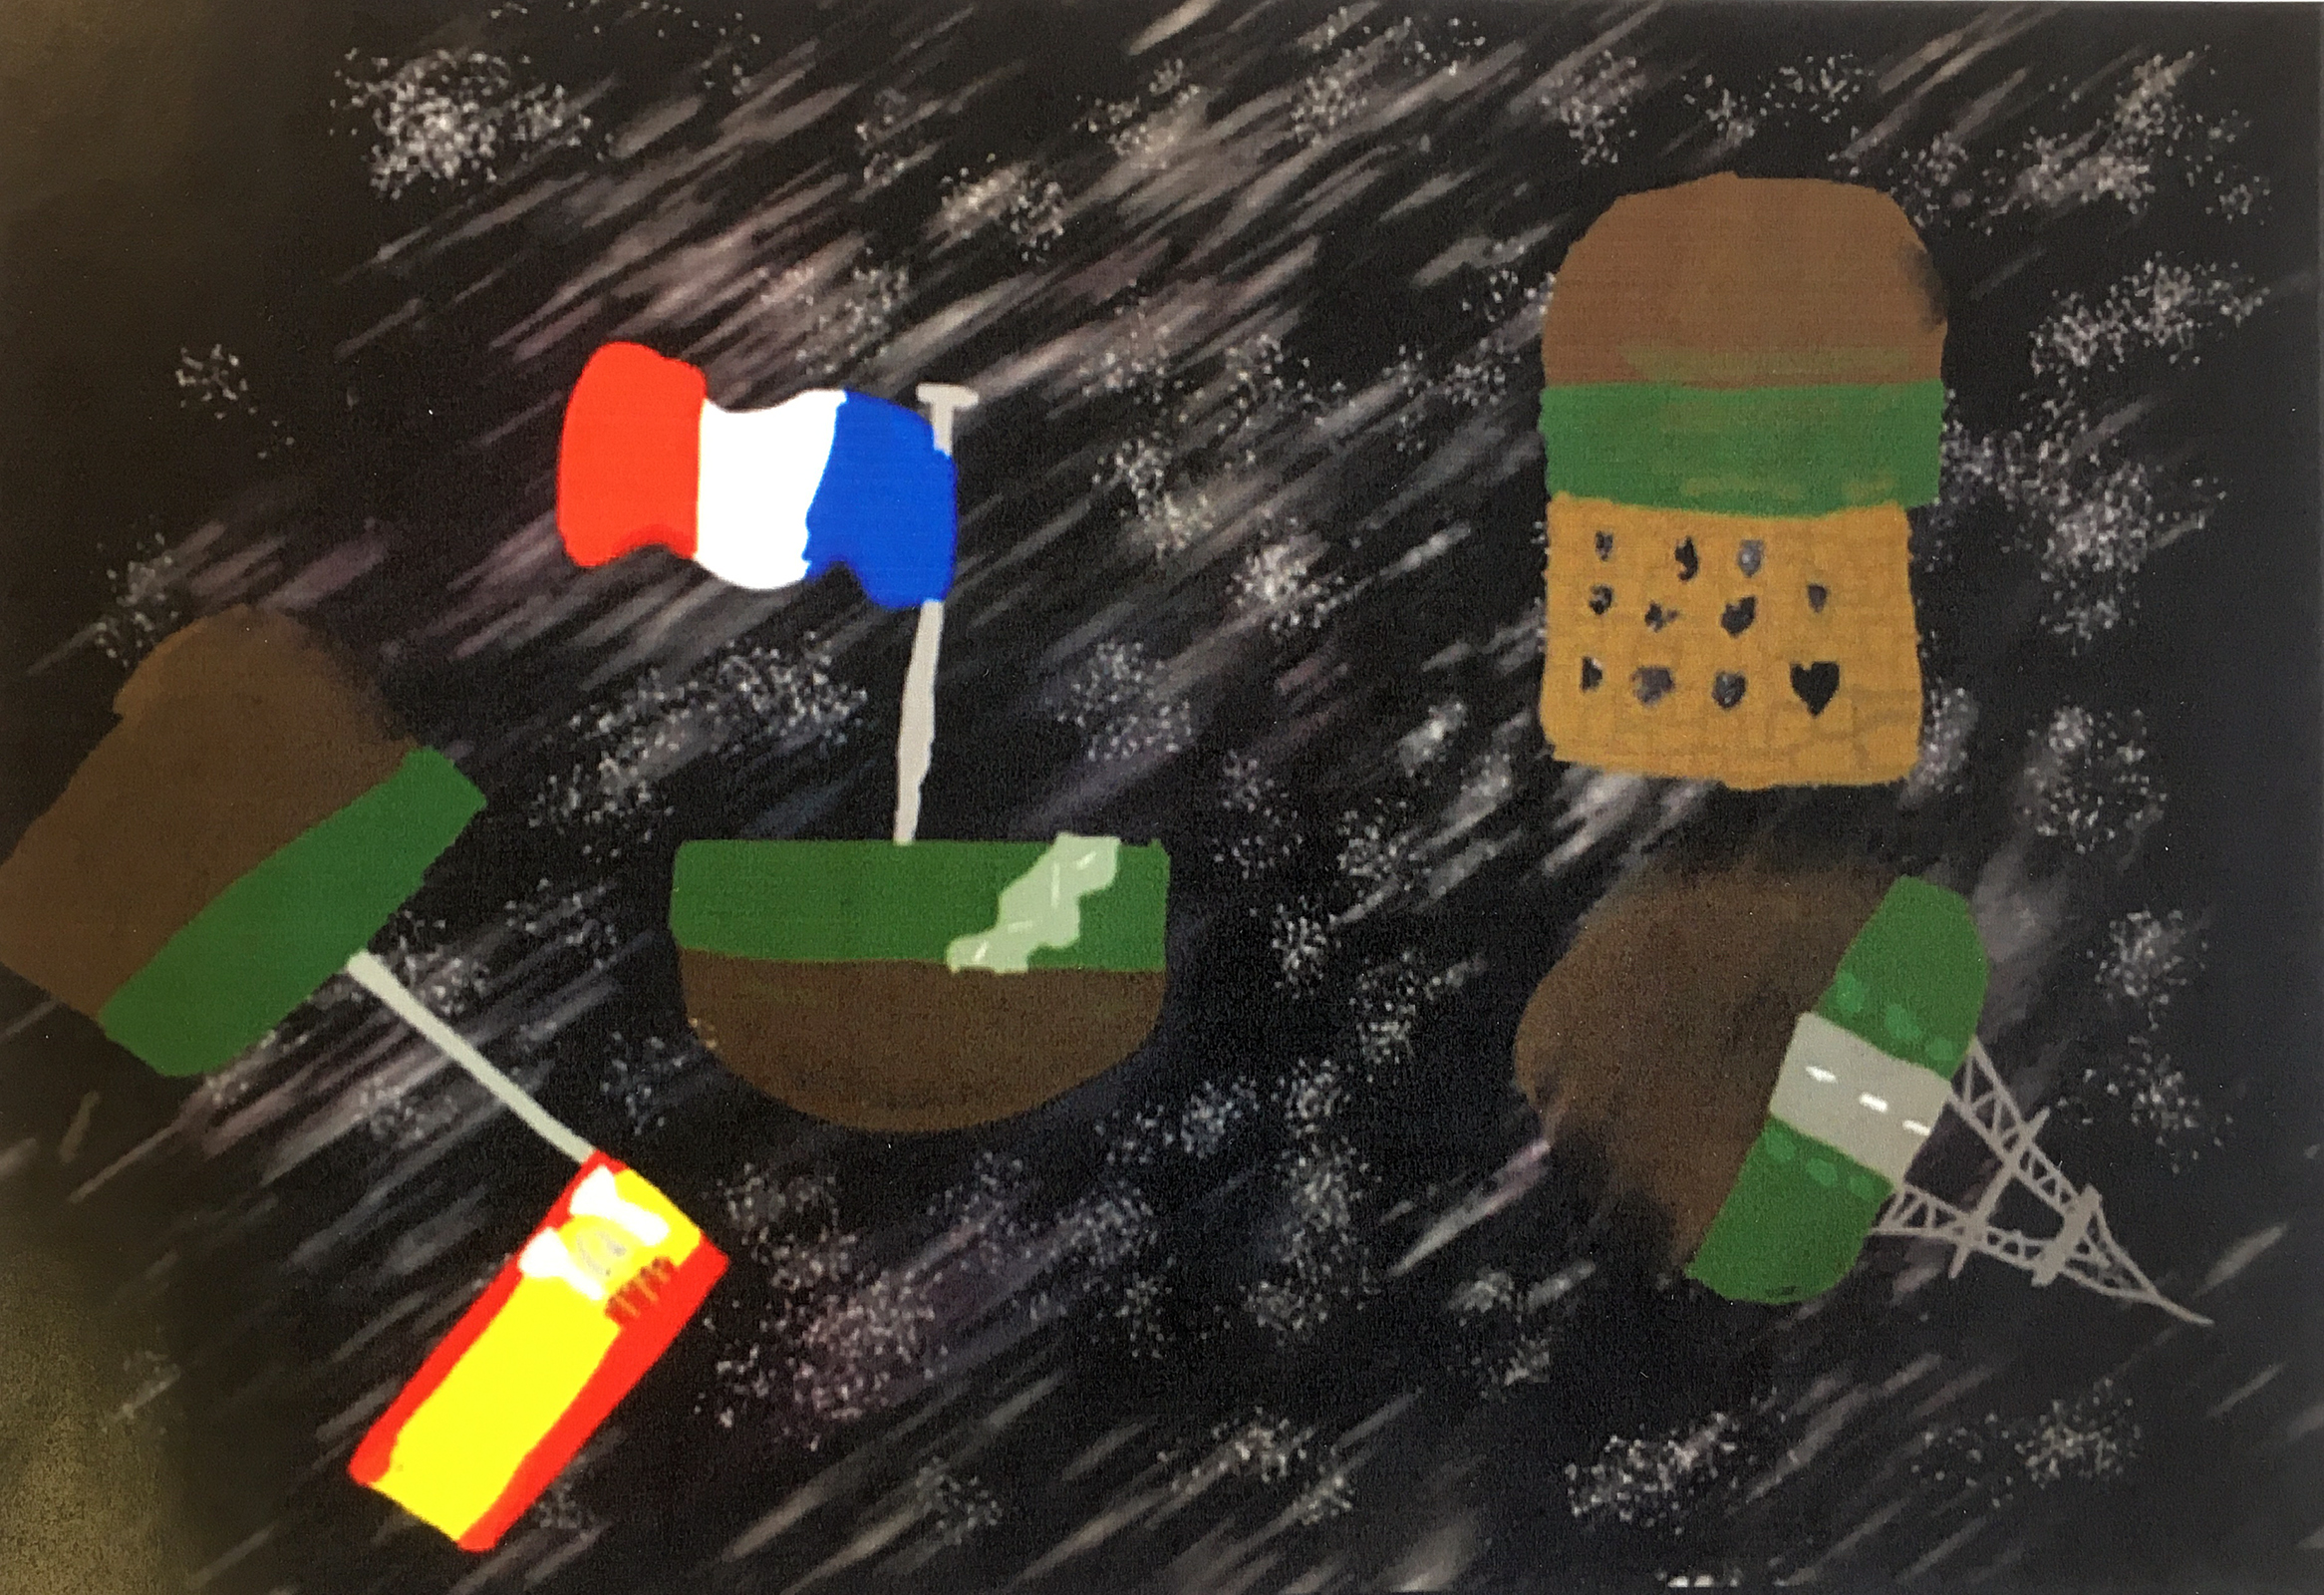 Art competition entry for the MFL block